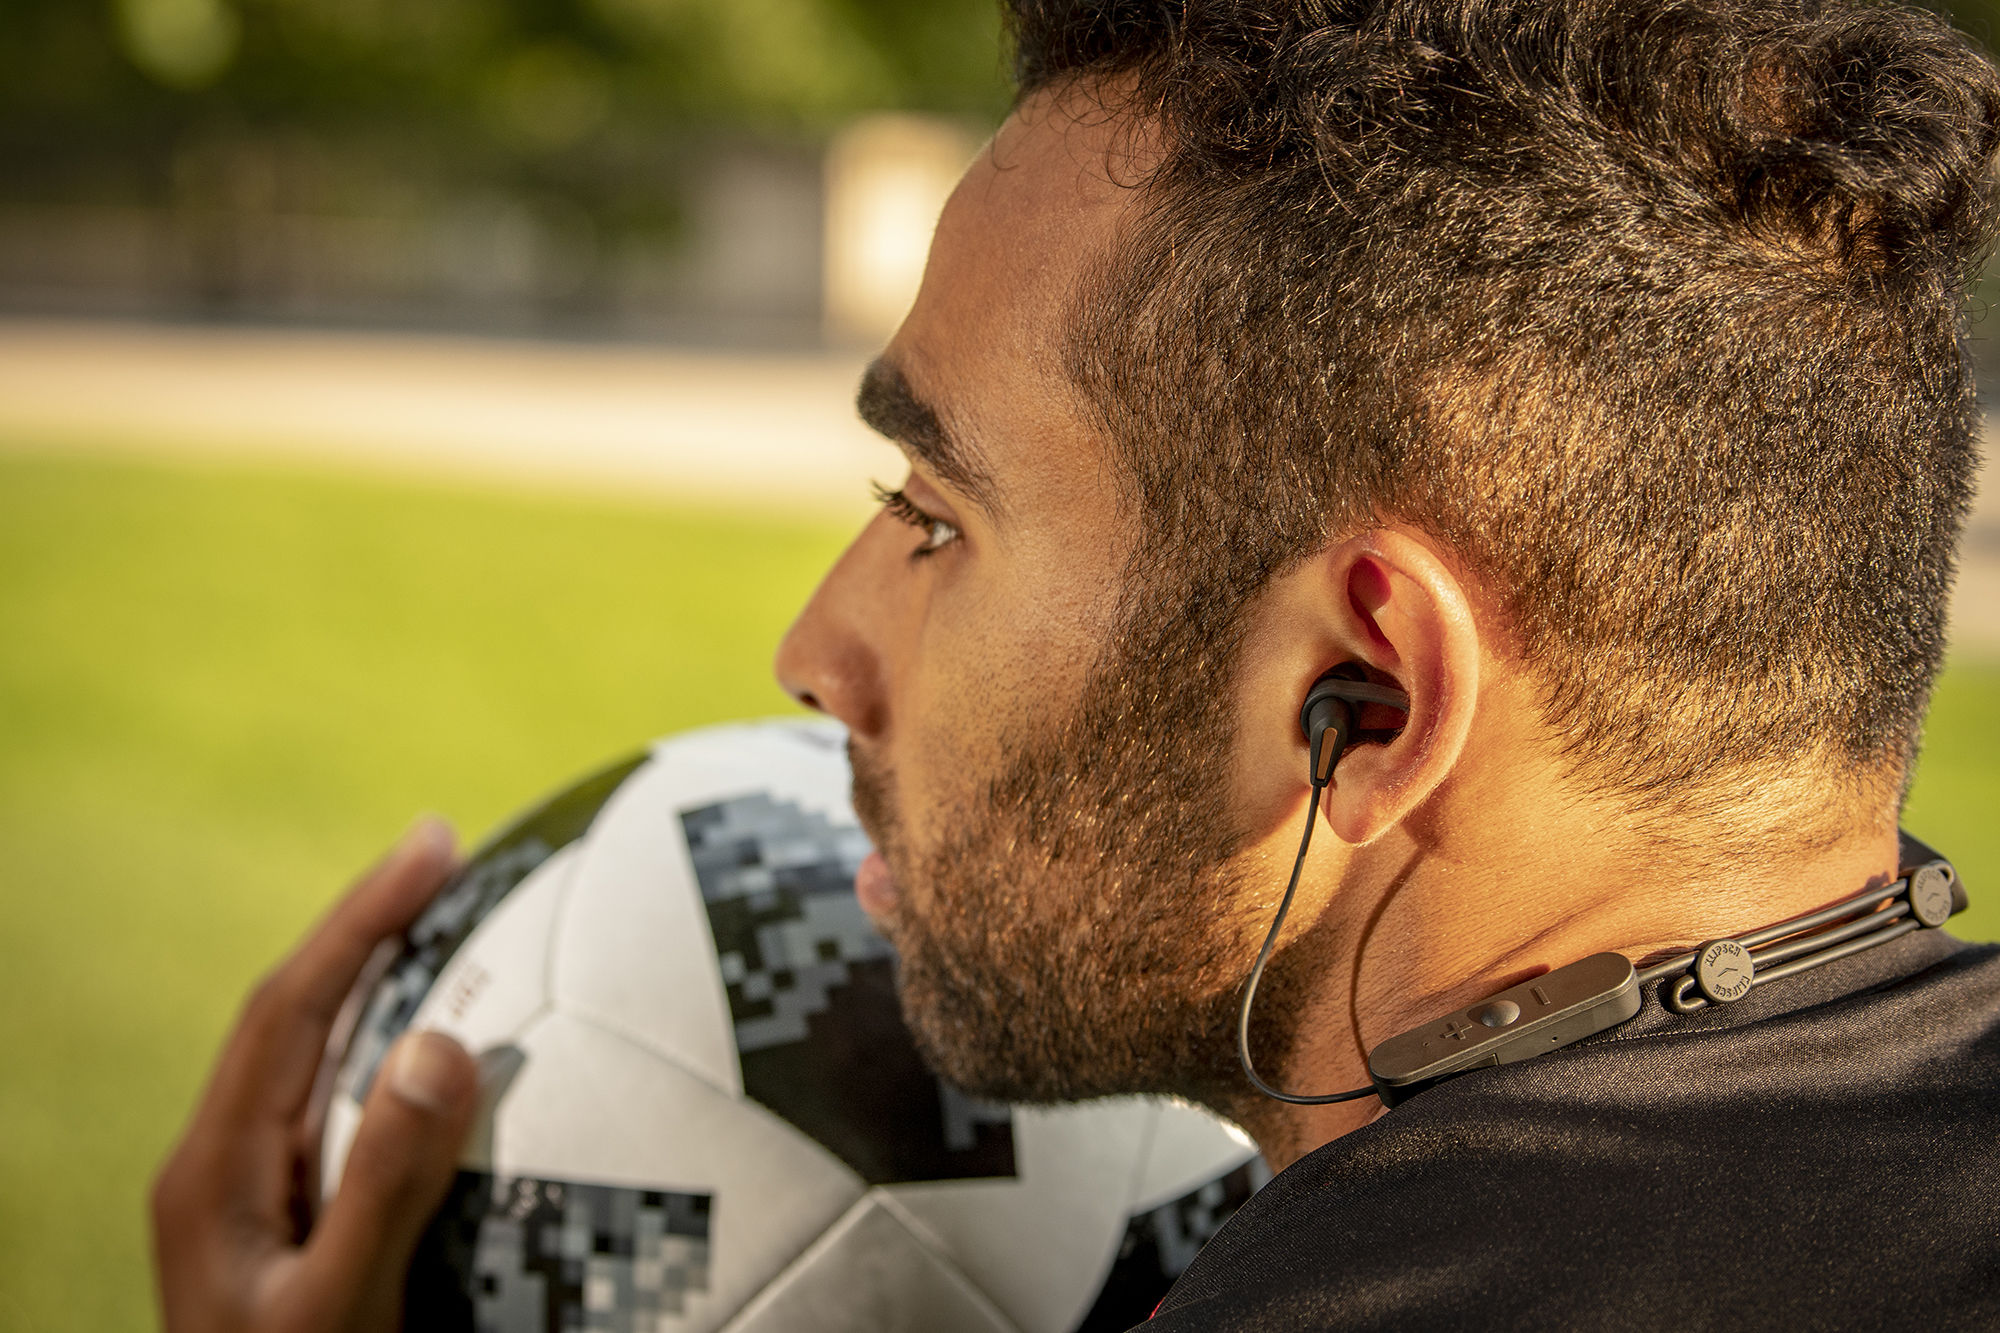 Man holding a soccer ball listening to Klipsch R5 wireless headphones